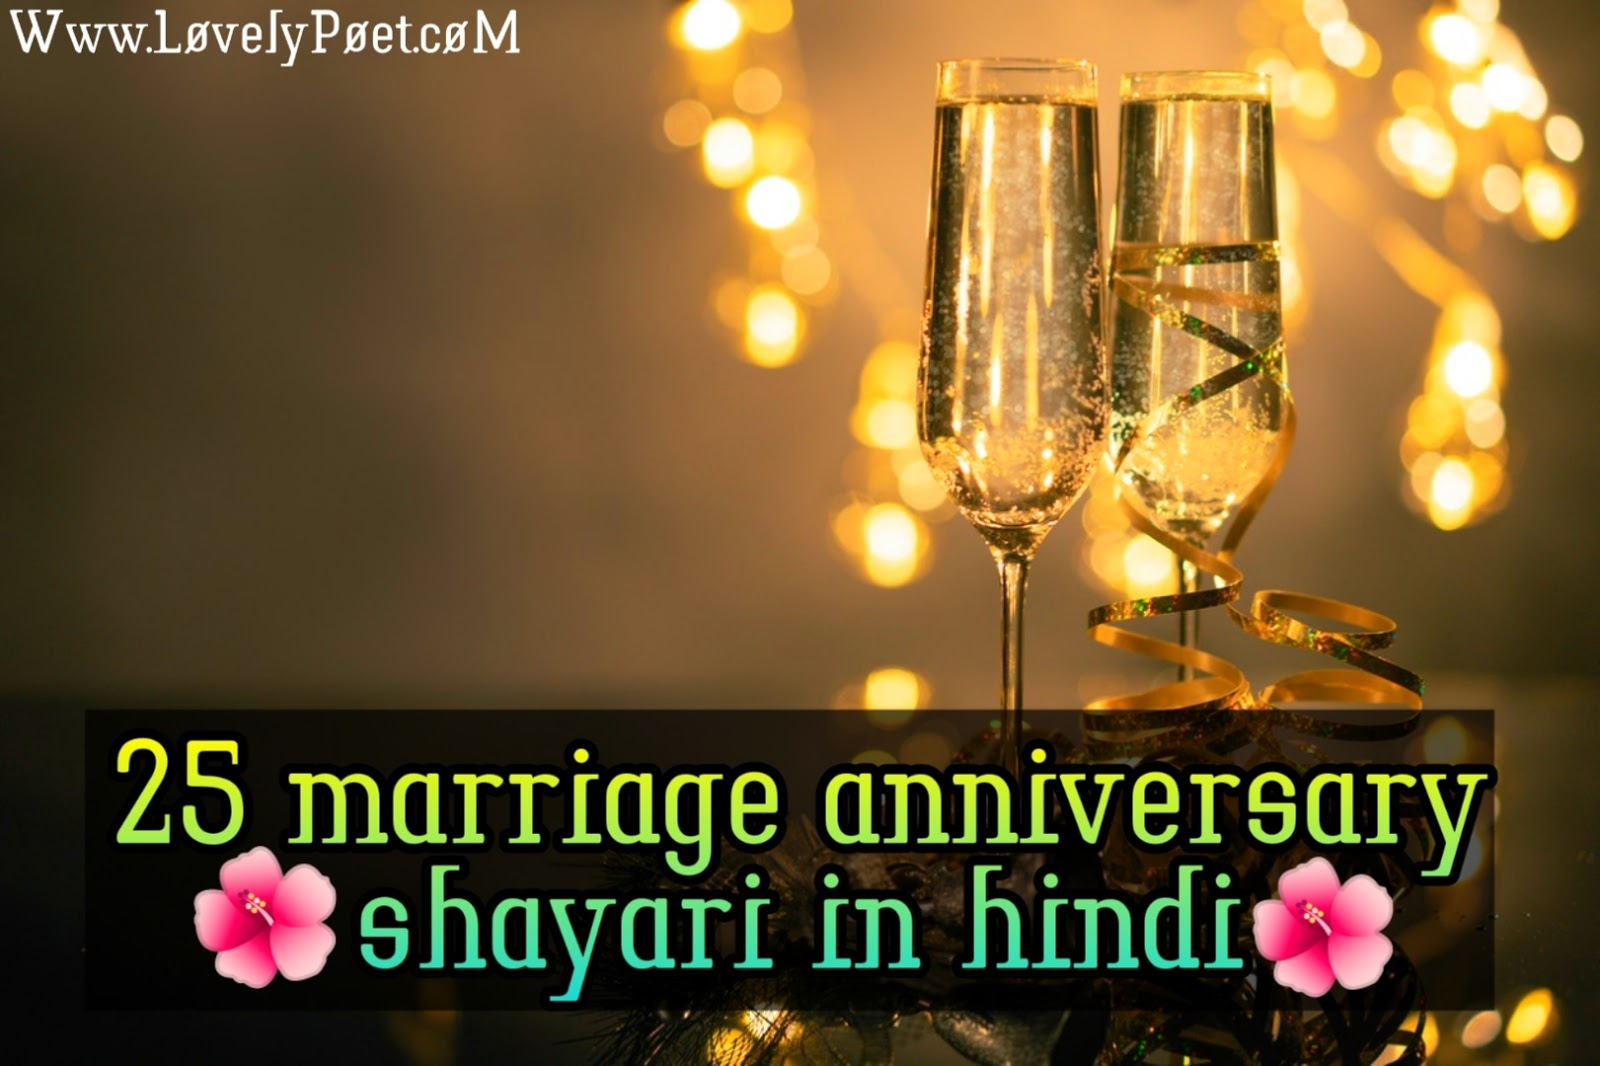 25-marriage-anniversary-shayari-in-hindi